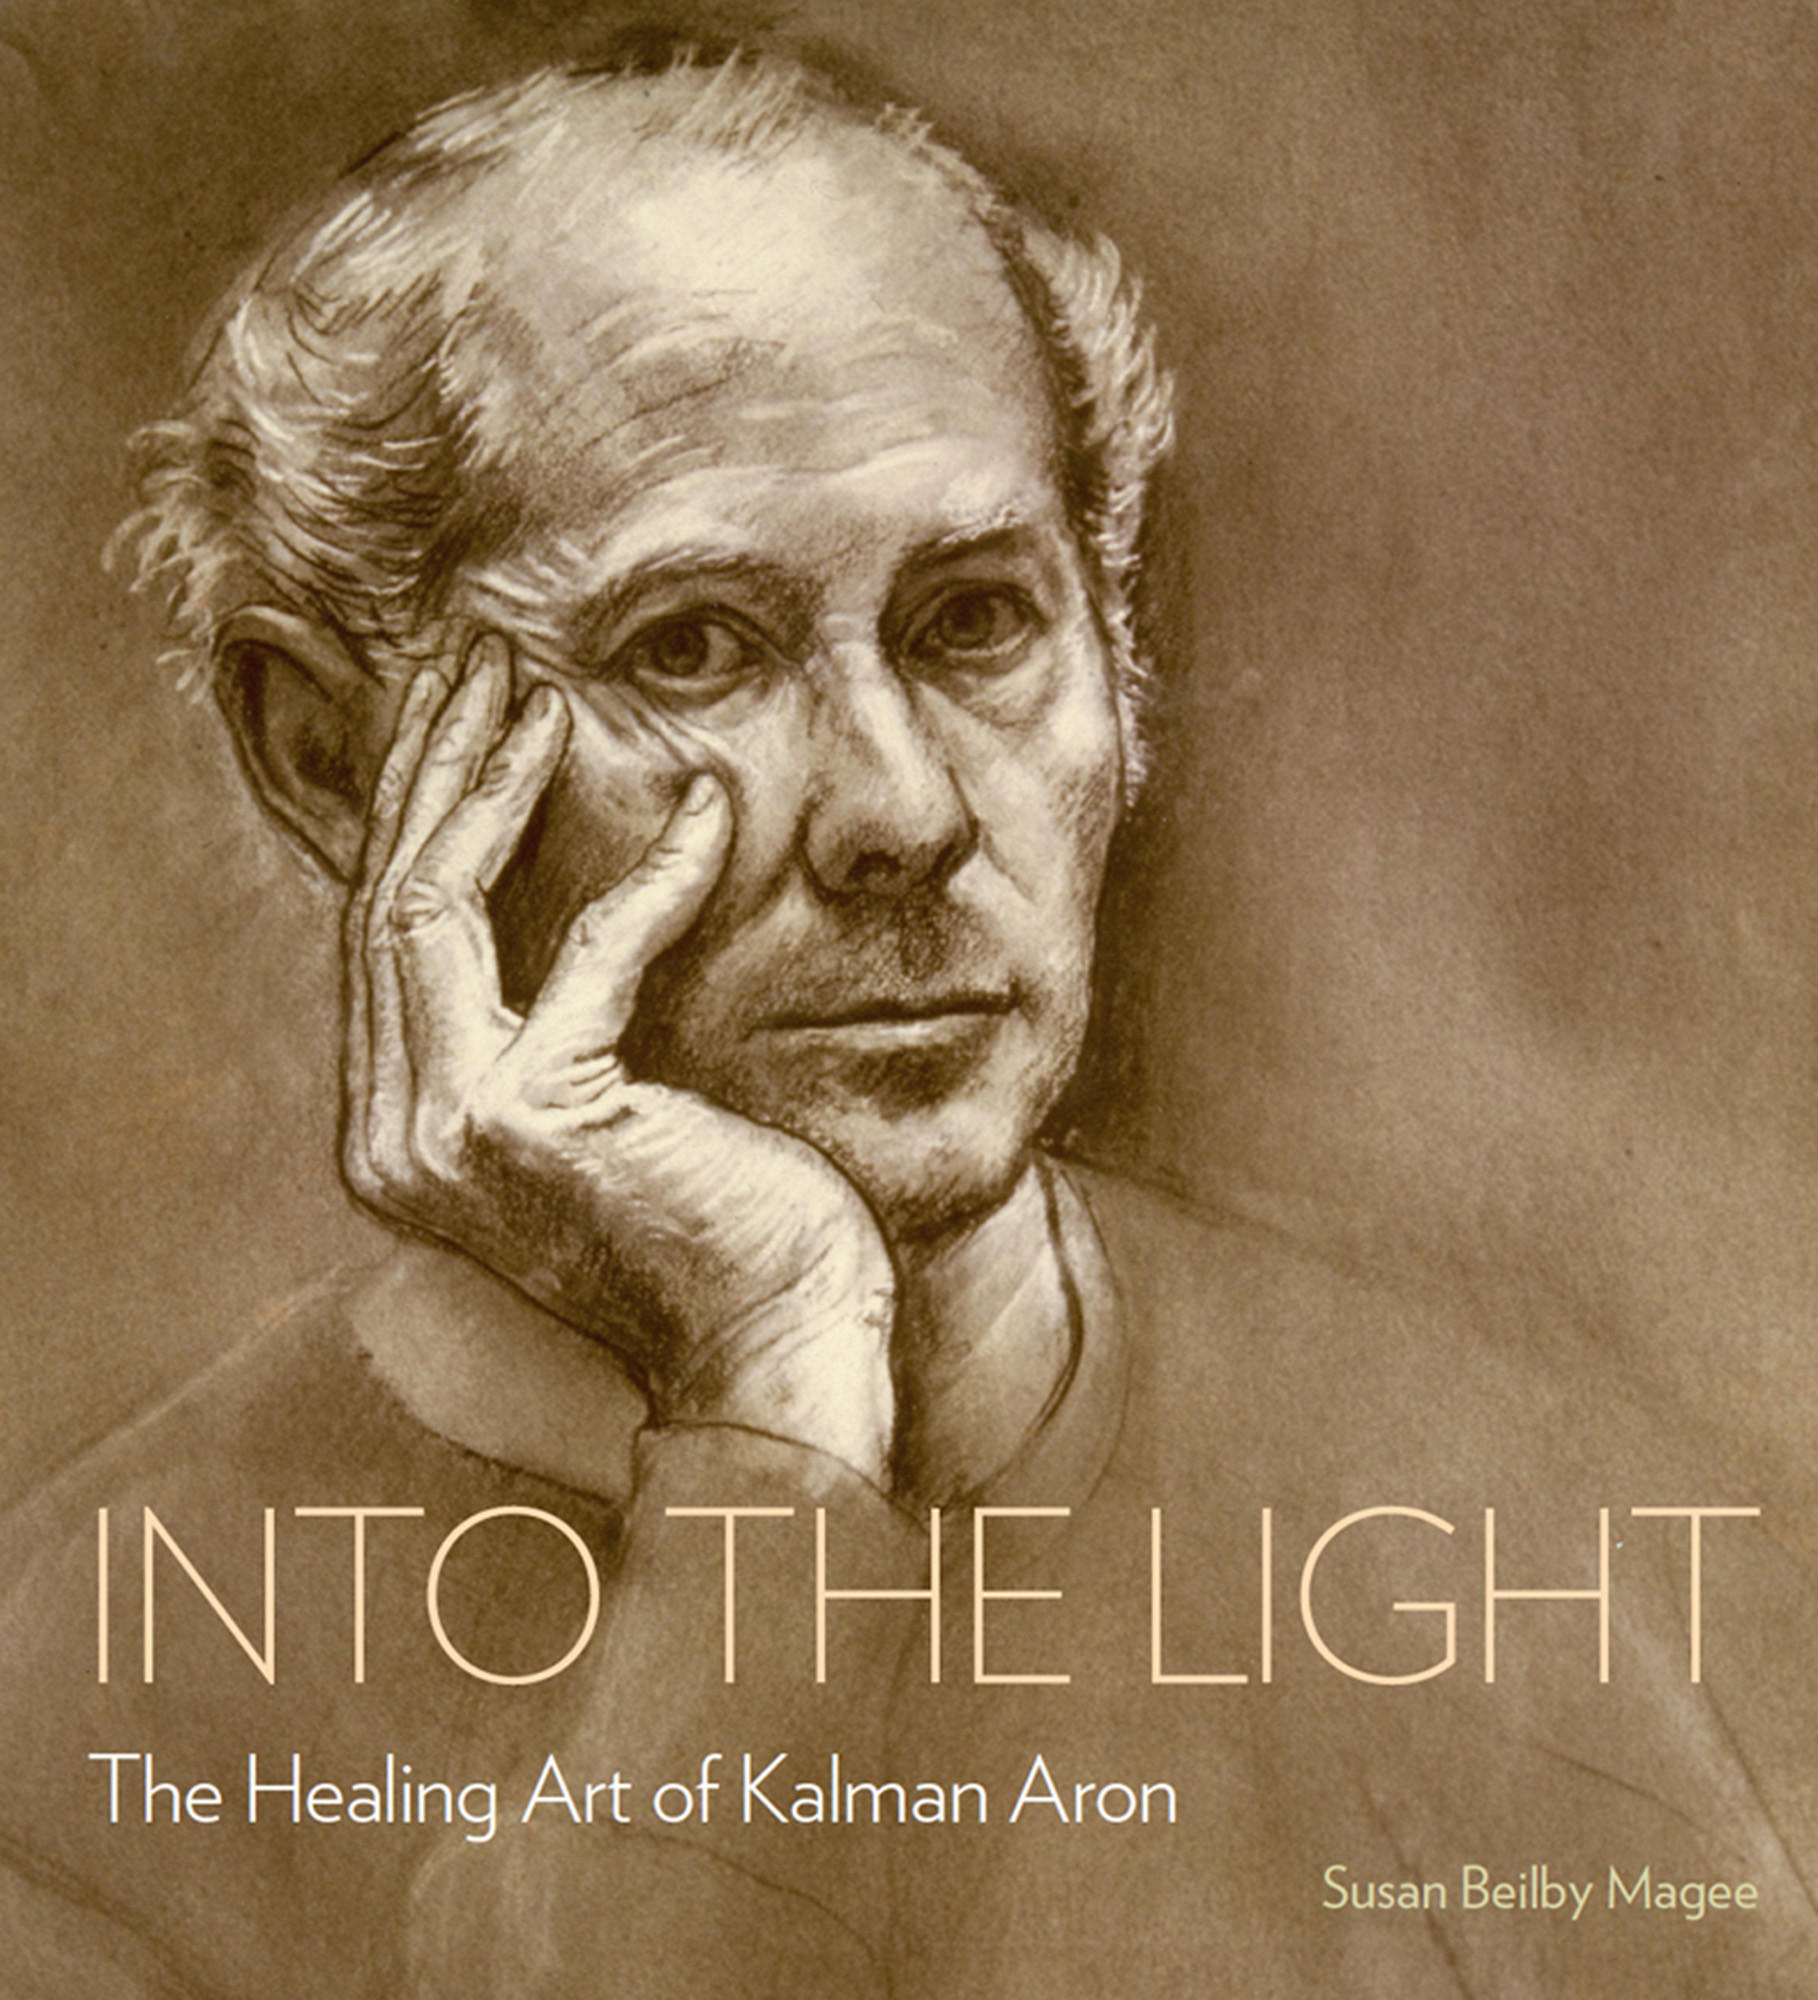 A self-portrait by Kalman Aron graces the cover of Susan Beilby Magee's book on the artist who made his home in Los Angeles after surviving the Holocaust.